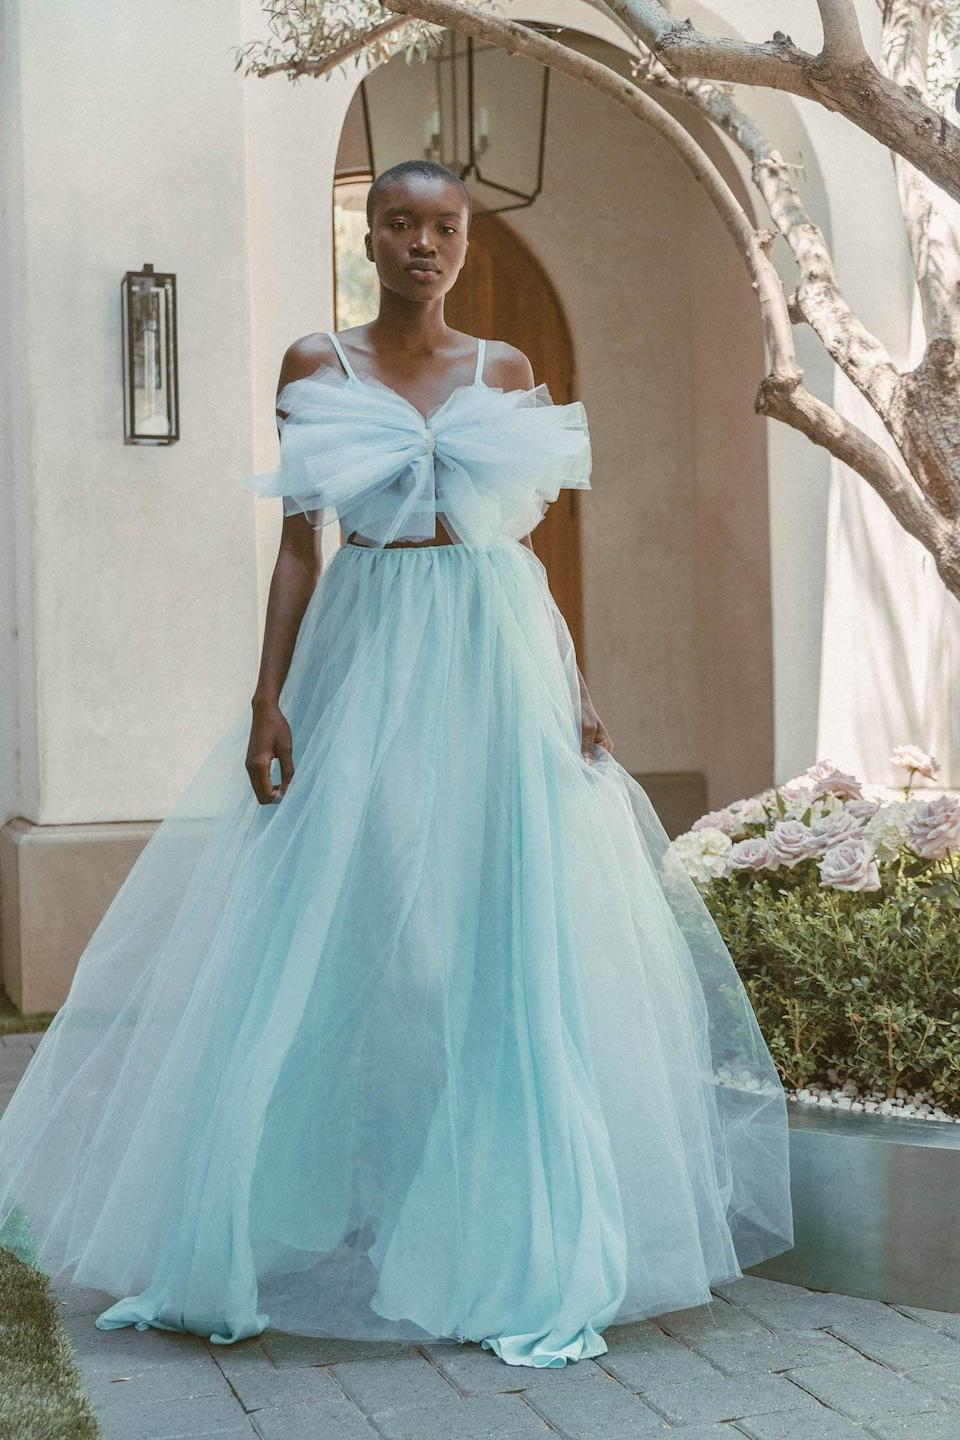 """<p>Dare to be different and wear """"something blue!"""" This <a href=""""https://www.popsugar.com/buy/Lurelly-Juniper-Tulle-Gown-582284?p_name=Lurelly%20Juniper%20Tulle%20Gown&retailer=lurelly.com&pid=582284&price=900&evar1=fab%3Aus&evar9=47551973&evar98=https%3A%2F%2Fwww.popsugar.com%2Fphoto-gallery%2F47551973%2Fimage%2F47552337%2FLurelly-Juniper-Tulle-Gown&list1=shopping%2Cwedding%2Cbride%2Cwedding%20dresses%2Cfashion%20shopping%2Cbest%20of%202020&prop13=api&pdata=1"""" class=""""link rapid-noclick-resp"""" rel=""""nofollow noopener"""" target=""""_blank"""" data-ylk=""""slk:Lurelly Juniper Tulle Gown"""">Lurelly Juniper Tulle Gown</a> ($900) is amazing.</p>"""